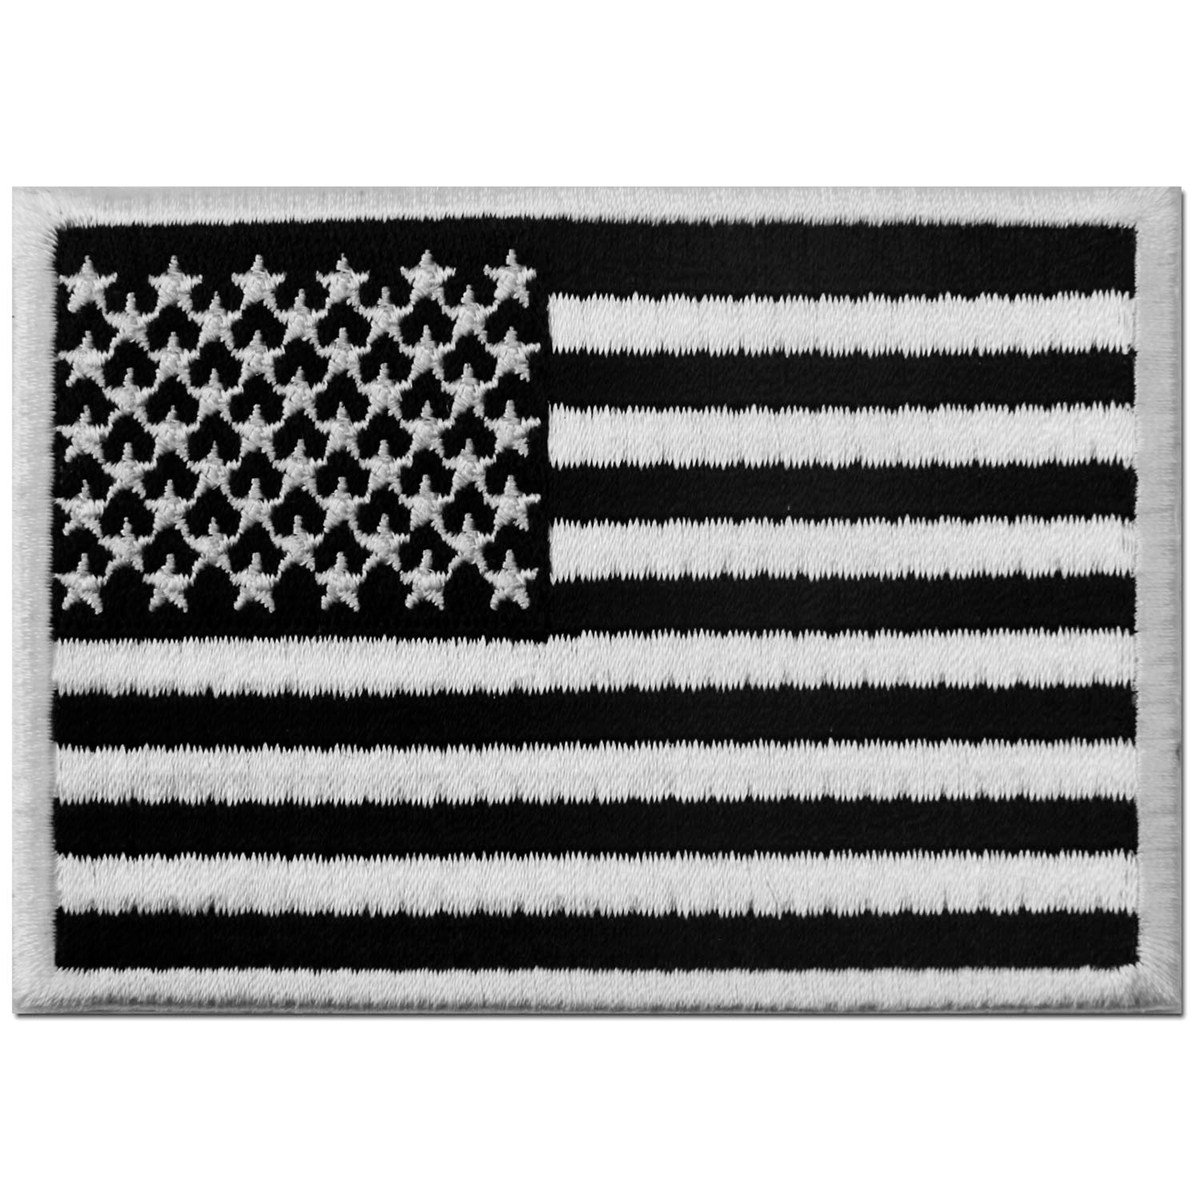 American Flag Embroidered Patch Gold Border USA United States of America Military Uniform Iron On Sew On Emblem EmbTao